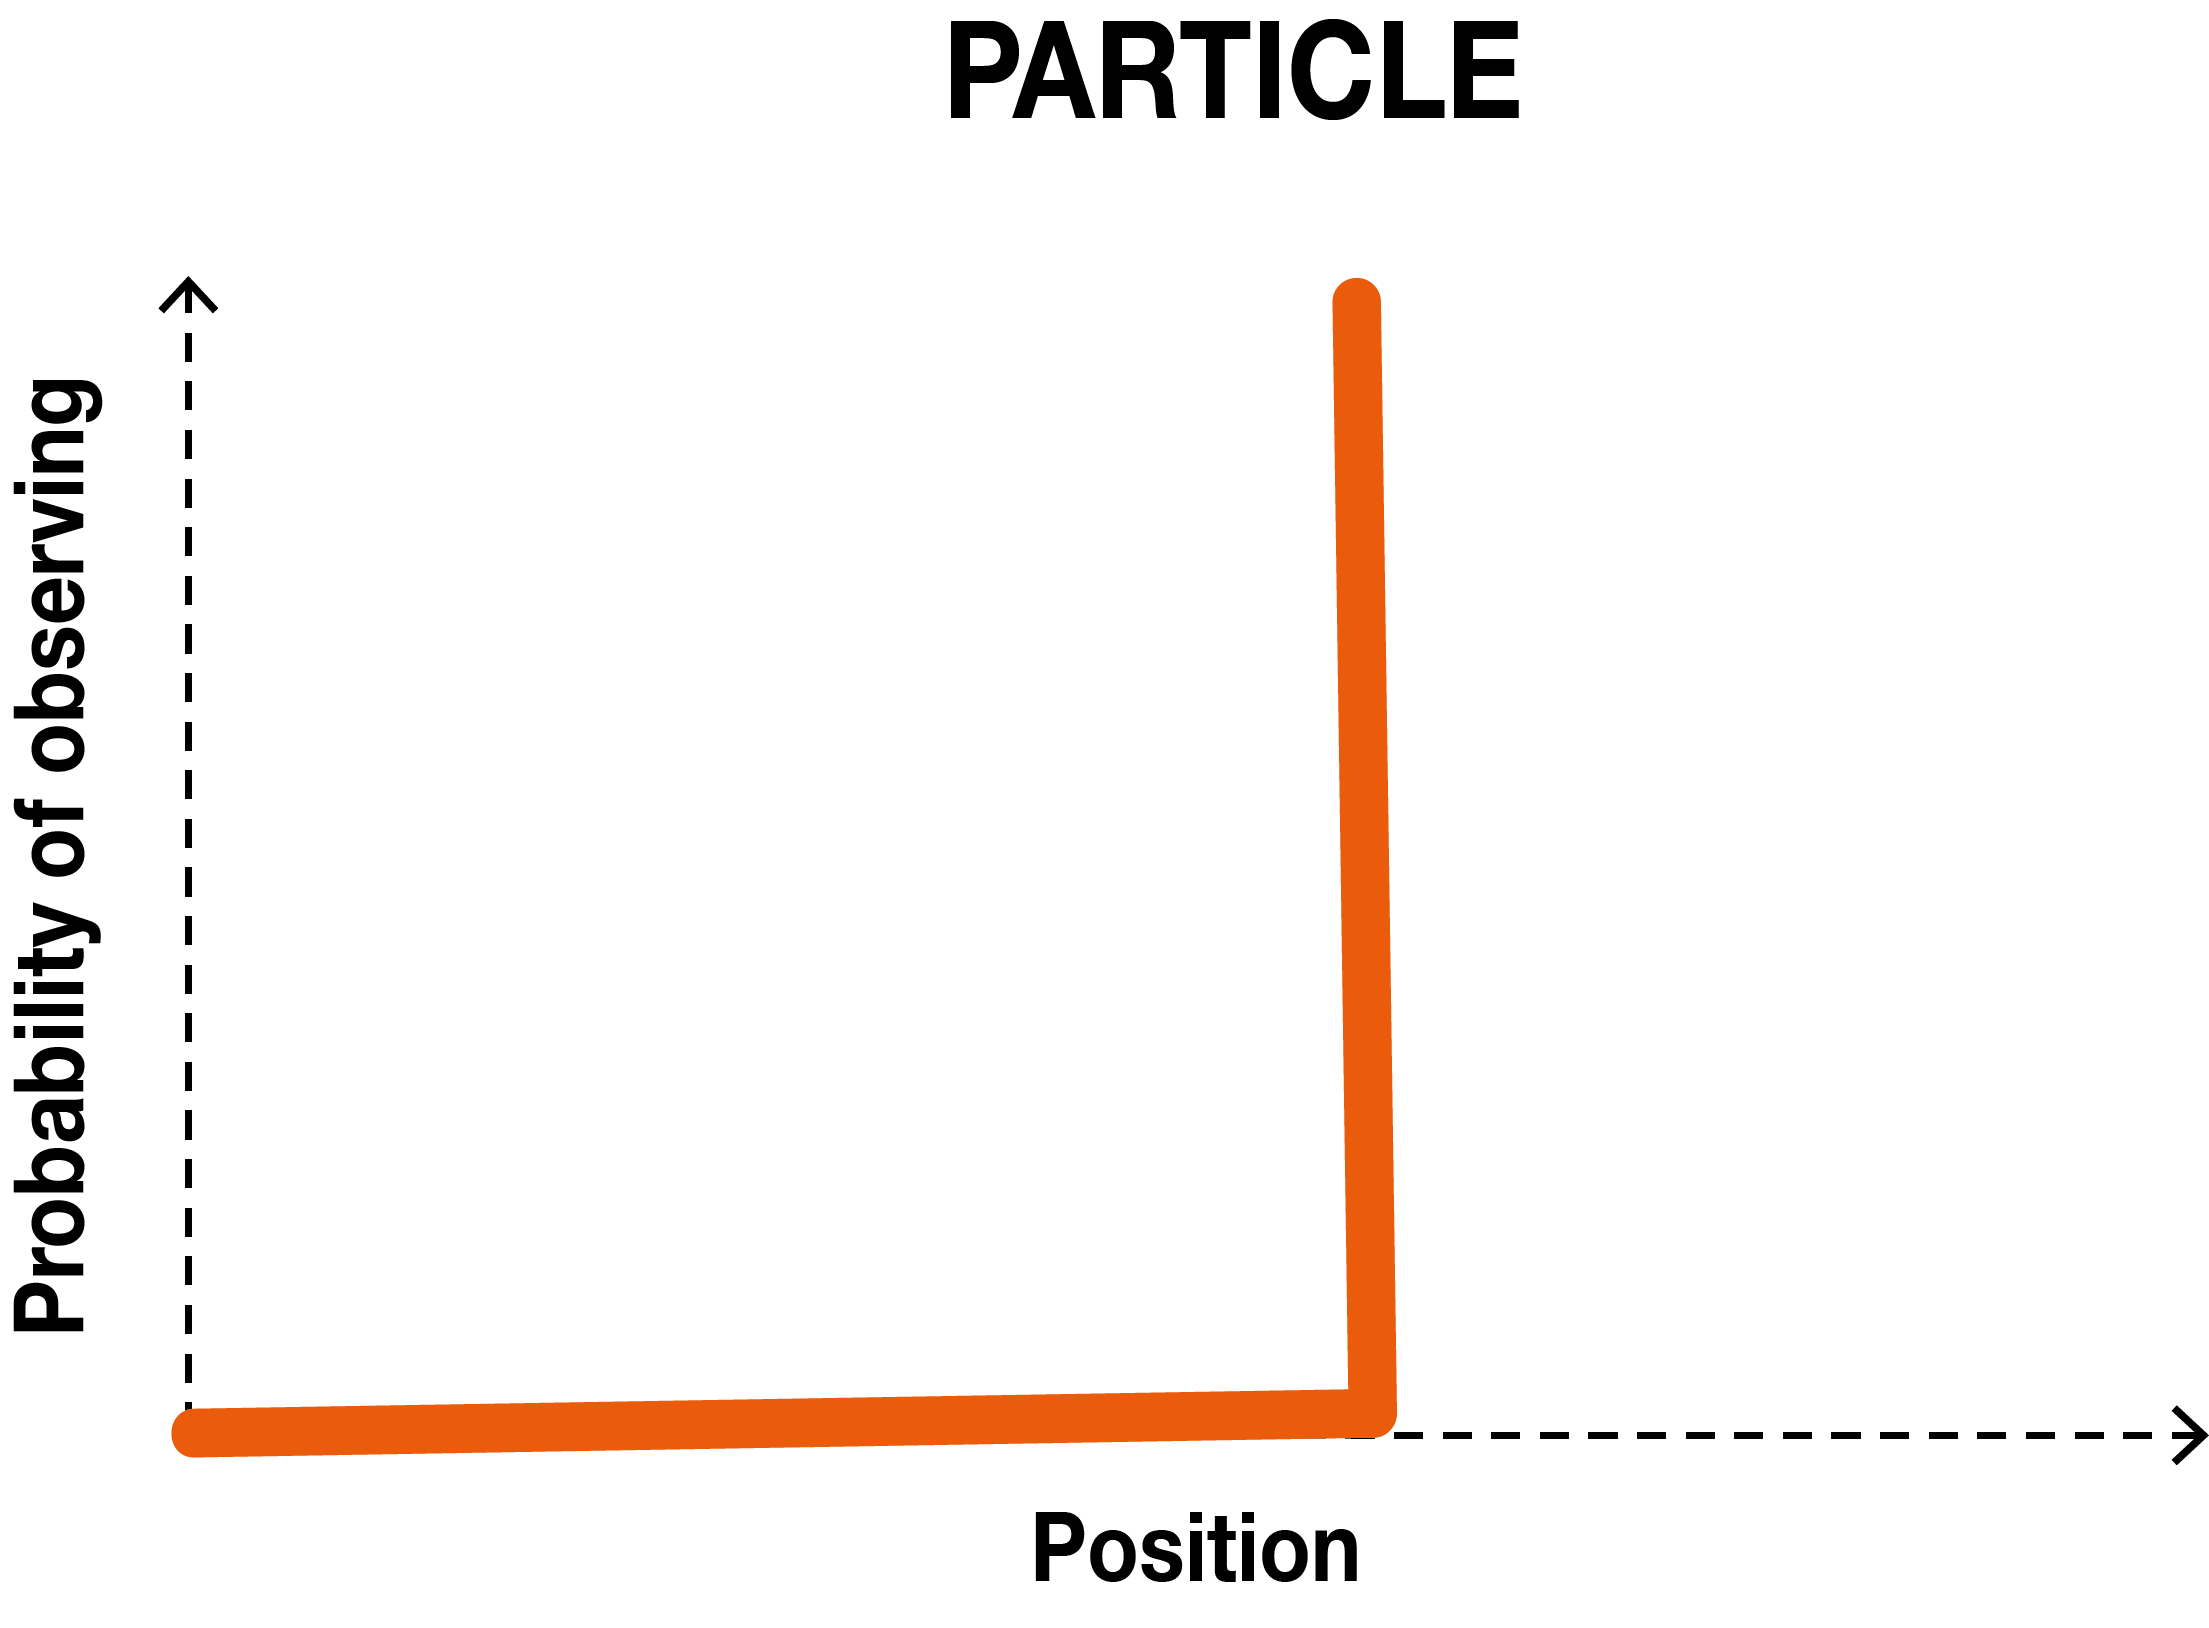 Spike graph showing particles position having 100% probability of being observed in a single position in space and 0% probability of being observed in any other position in space.